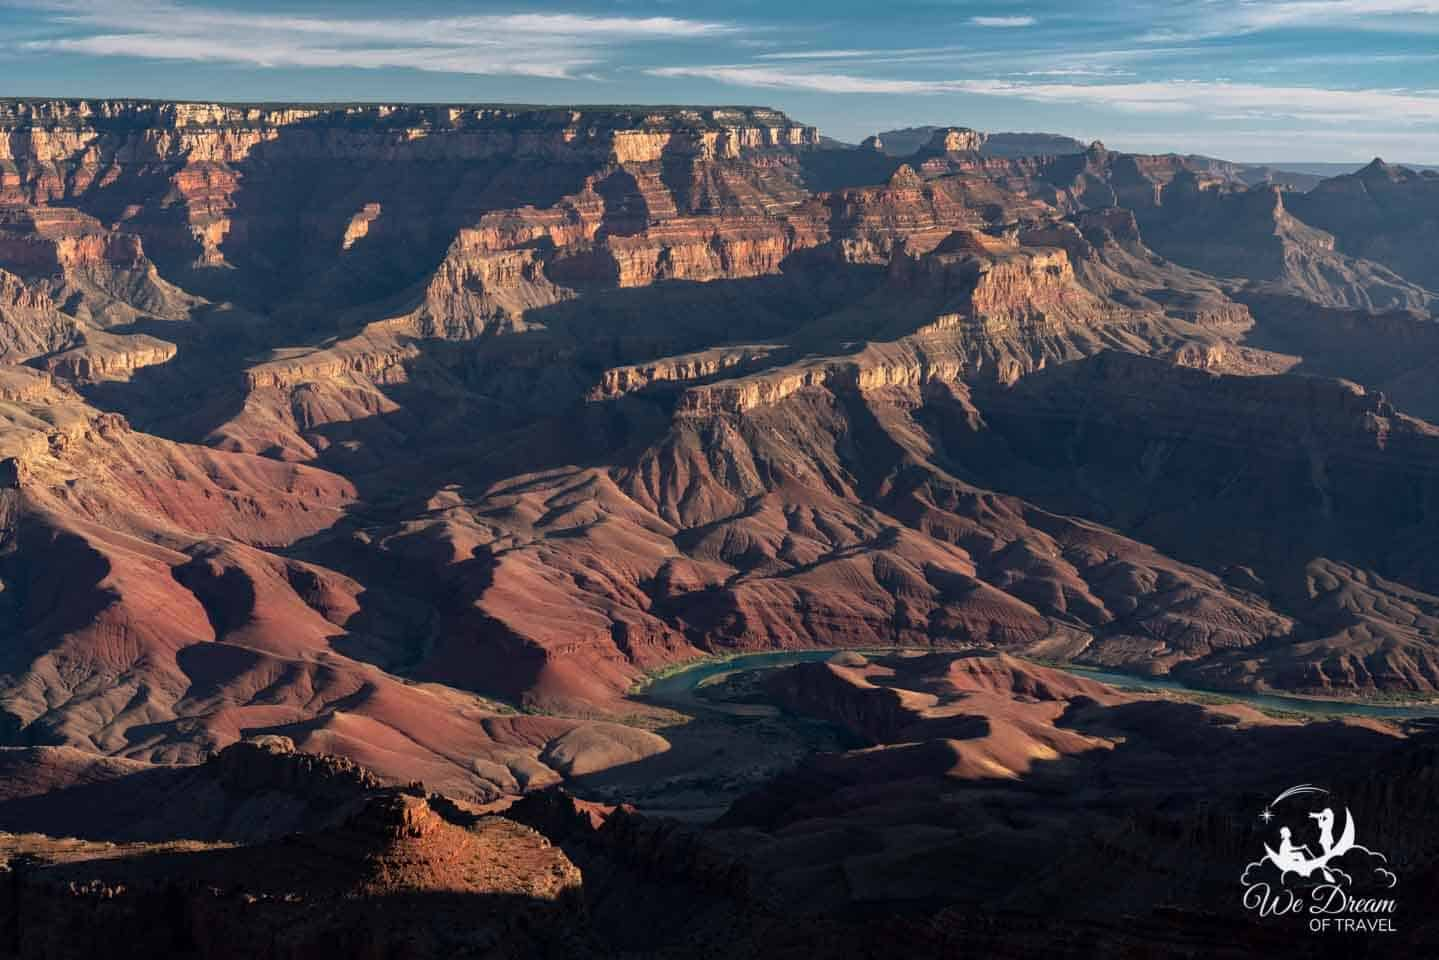 There are numerous tour options available for those that don't have the time or desire to plan their own daytrip to the Grand Canyon!